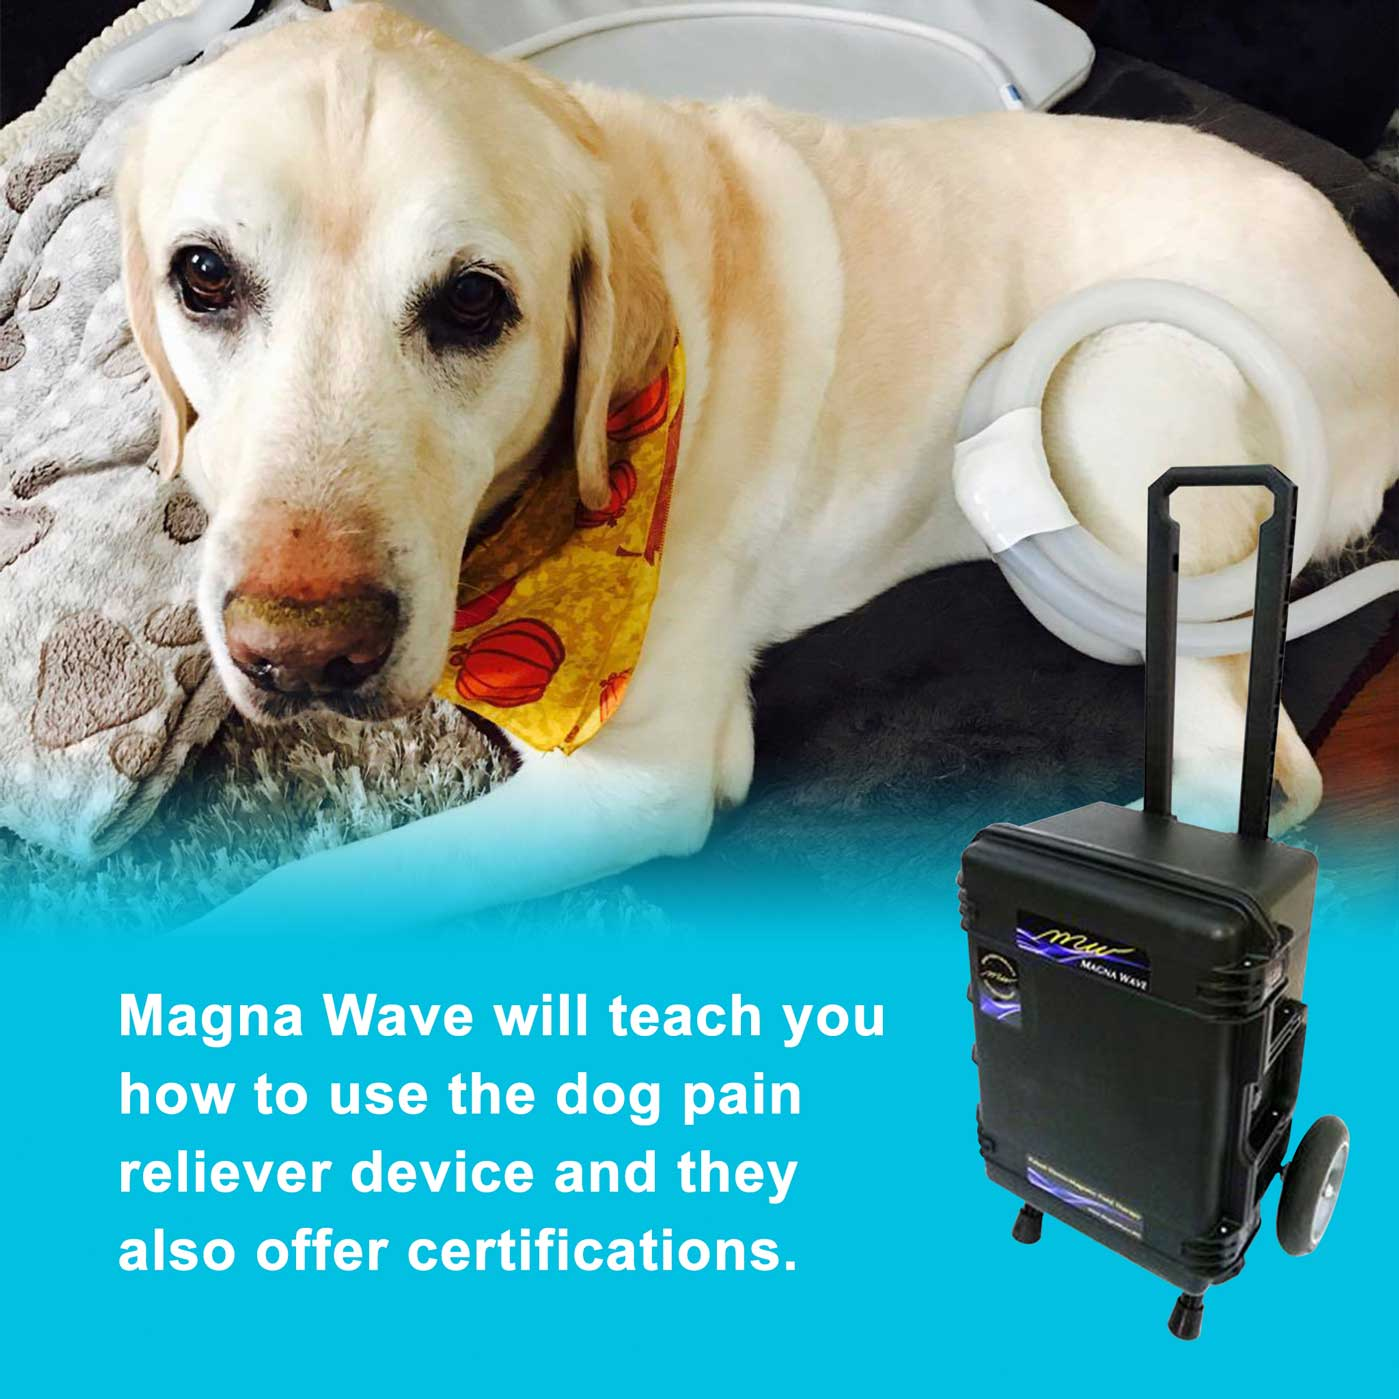 Magna Wave will teach you how to use the dog pain reliever device.